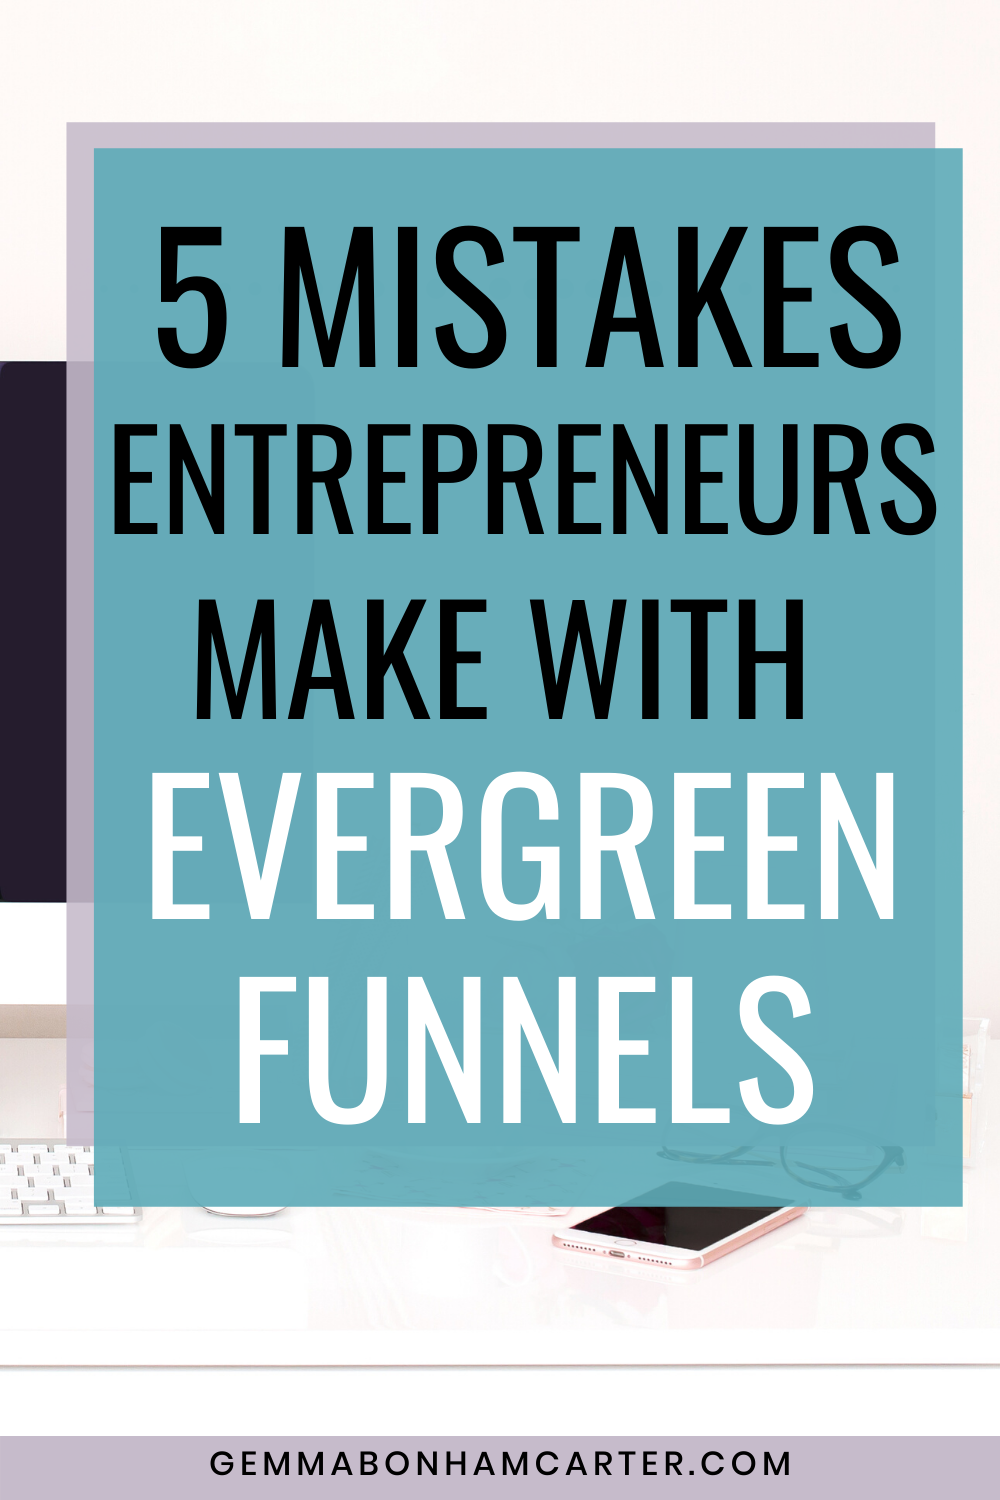 5 Mistakes online entrepreneurs are making with their evergreen funnels. Learn how to sell more of your digital products and online courses with an evergreen email funnel that converts!